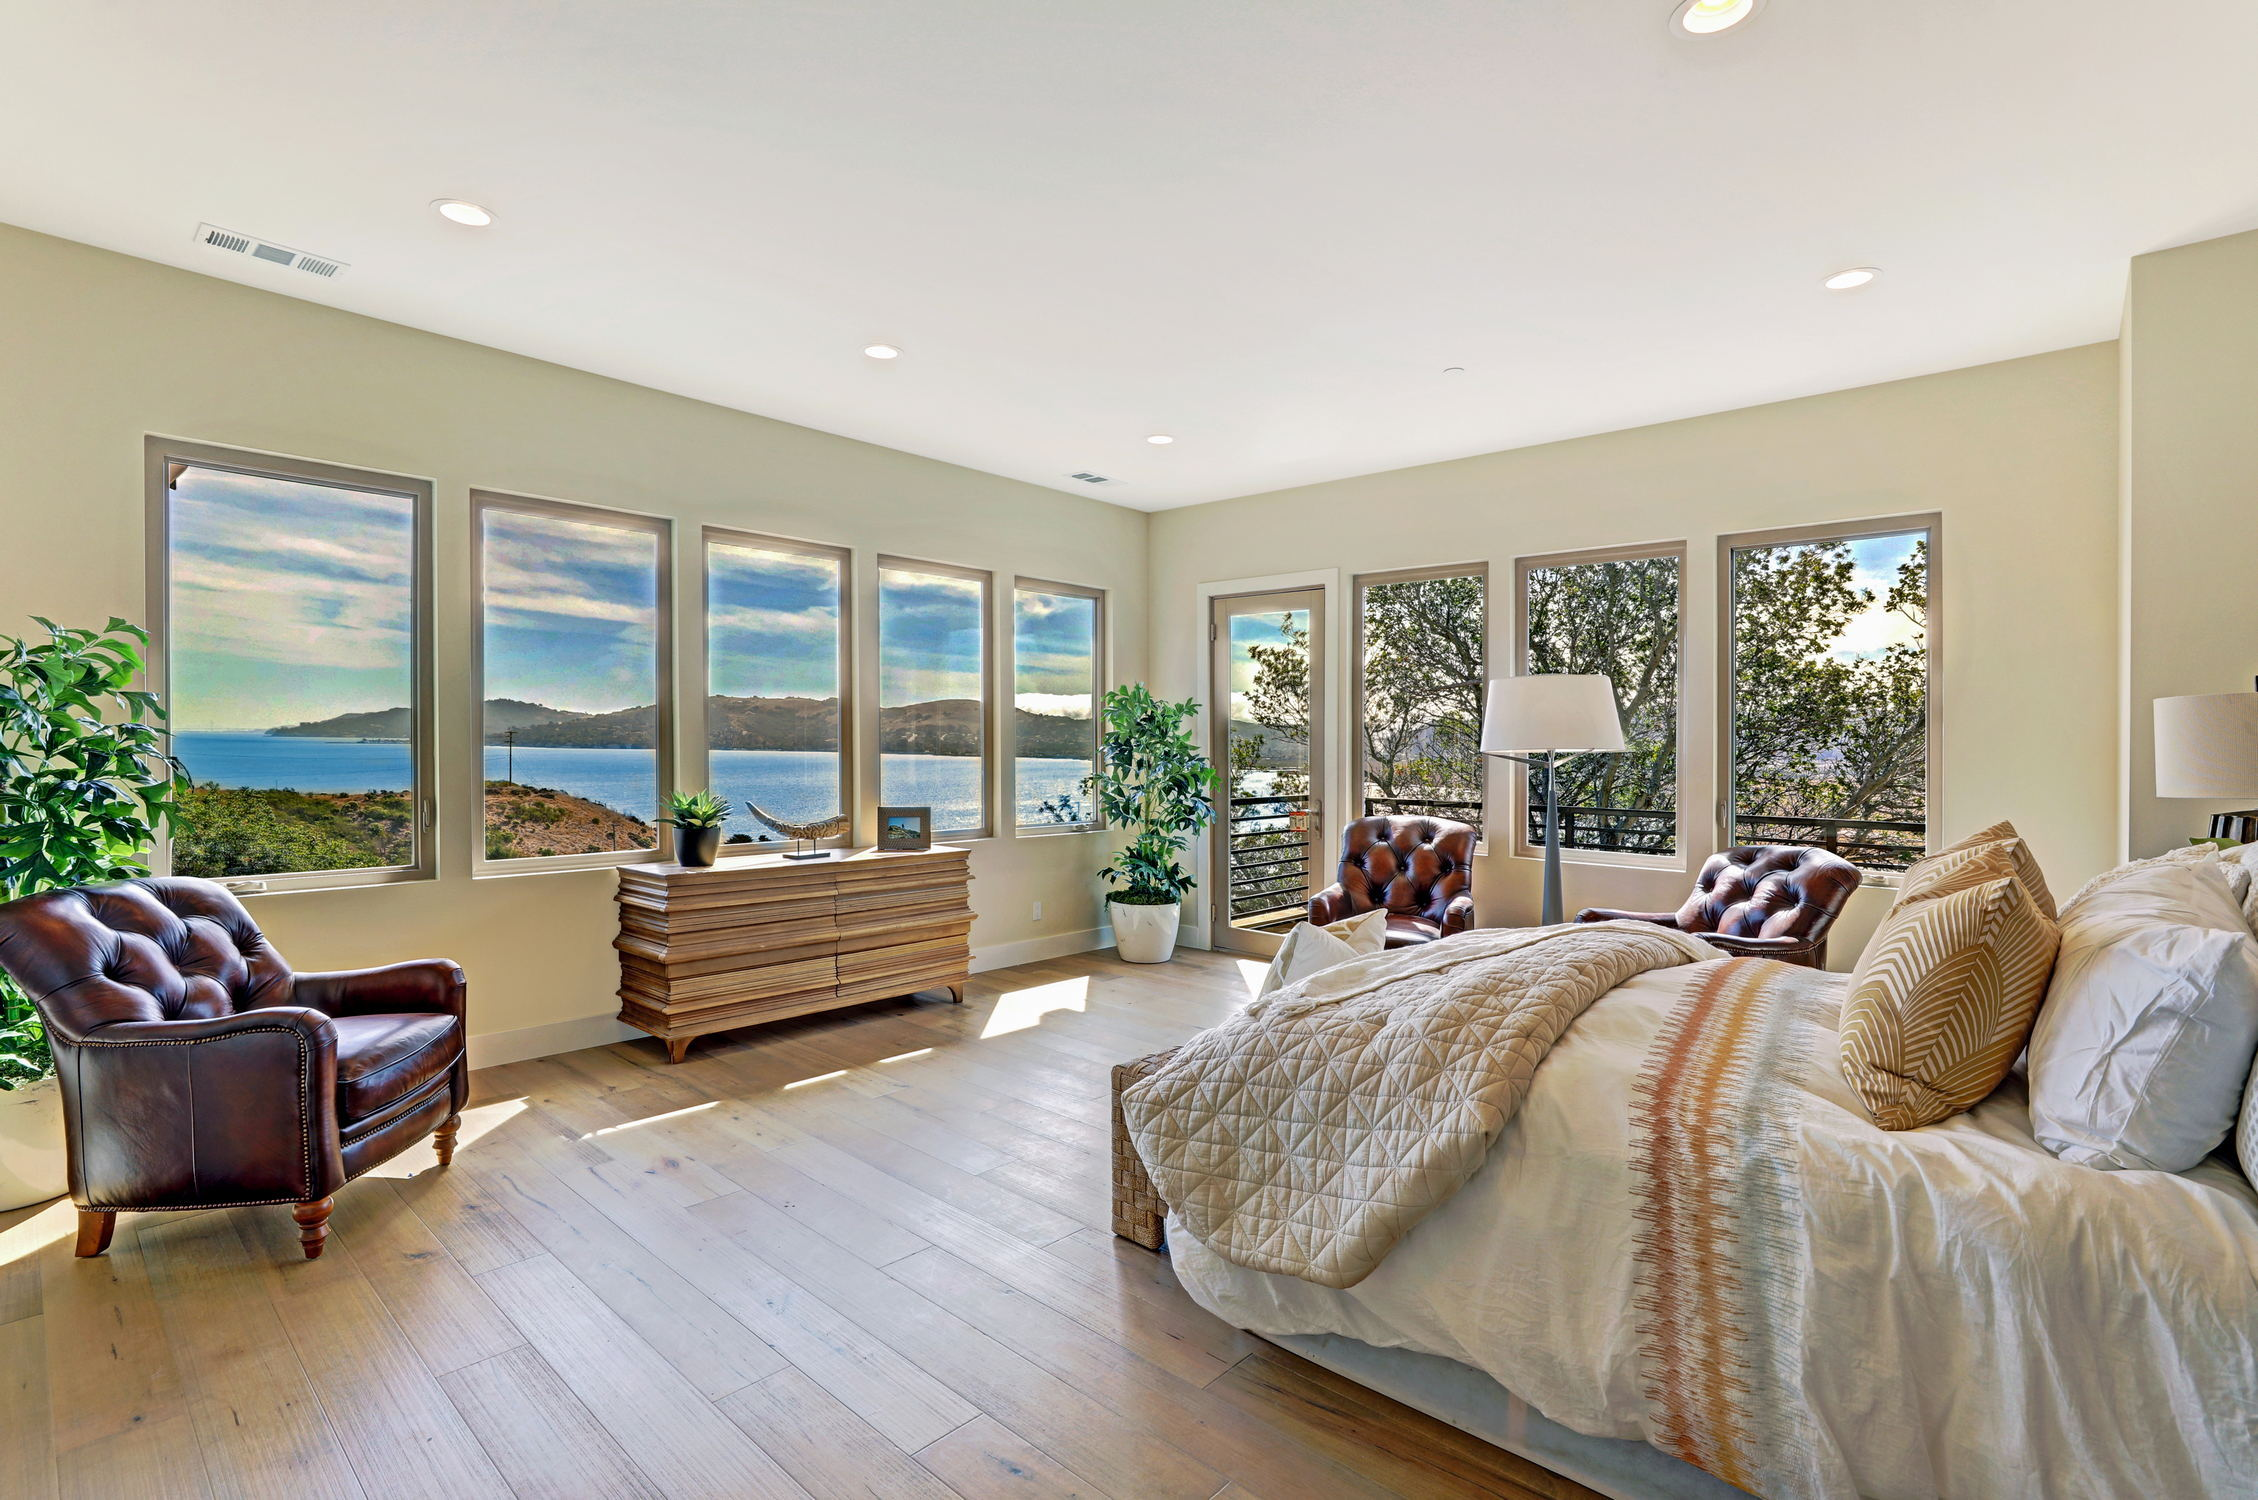 31 Drakes Cove, Larkspur Homes for Sale42 MLS - Own Marin with Compass - Mill Valley Realtor.jpg